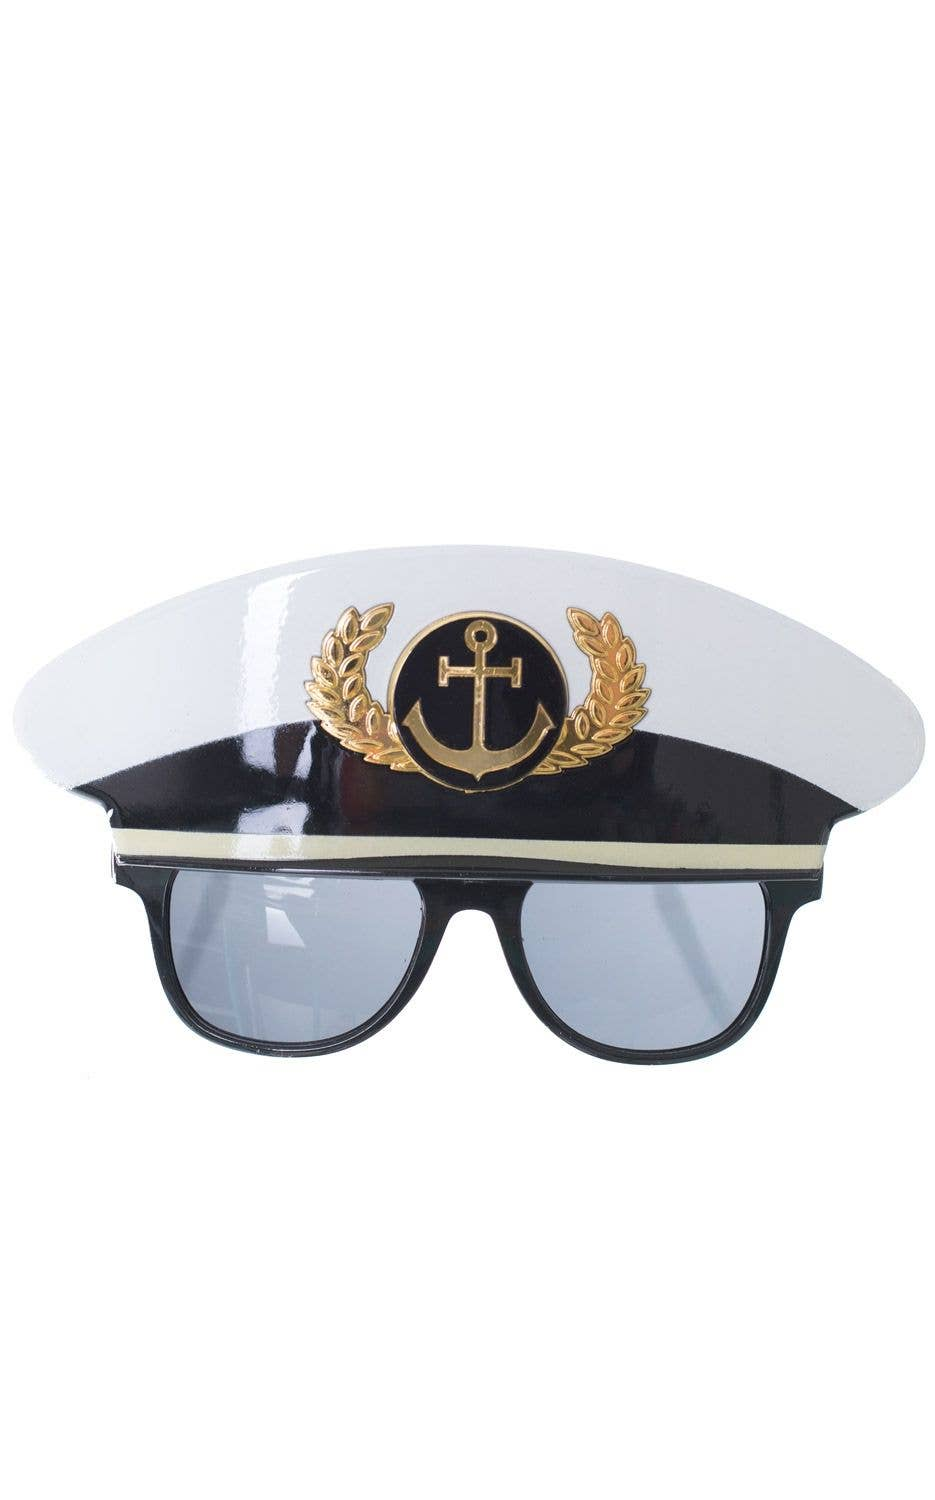 5b9421cd19d Black And White Crown and Anchor Sailor Hat Glasses